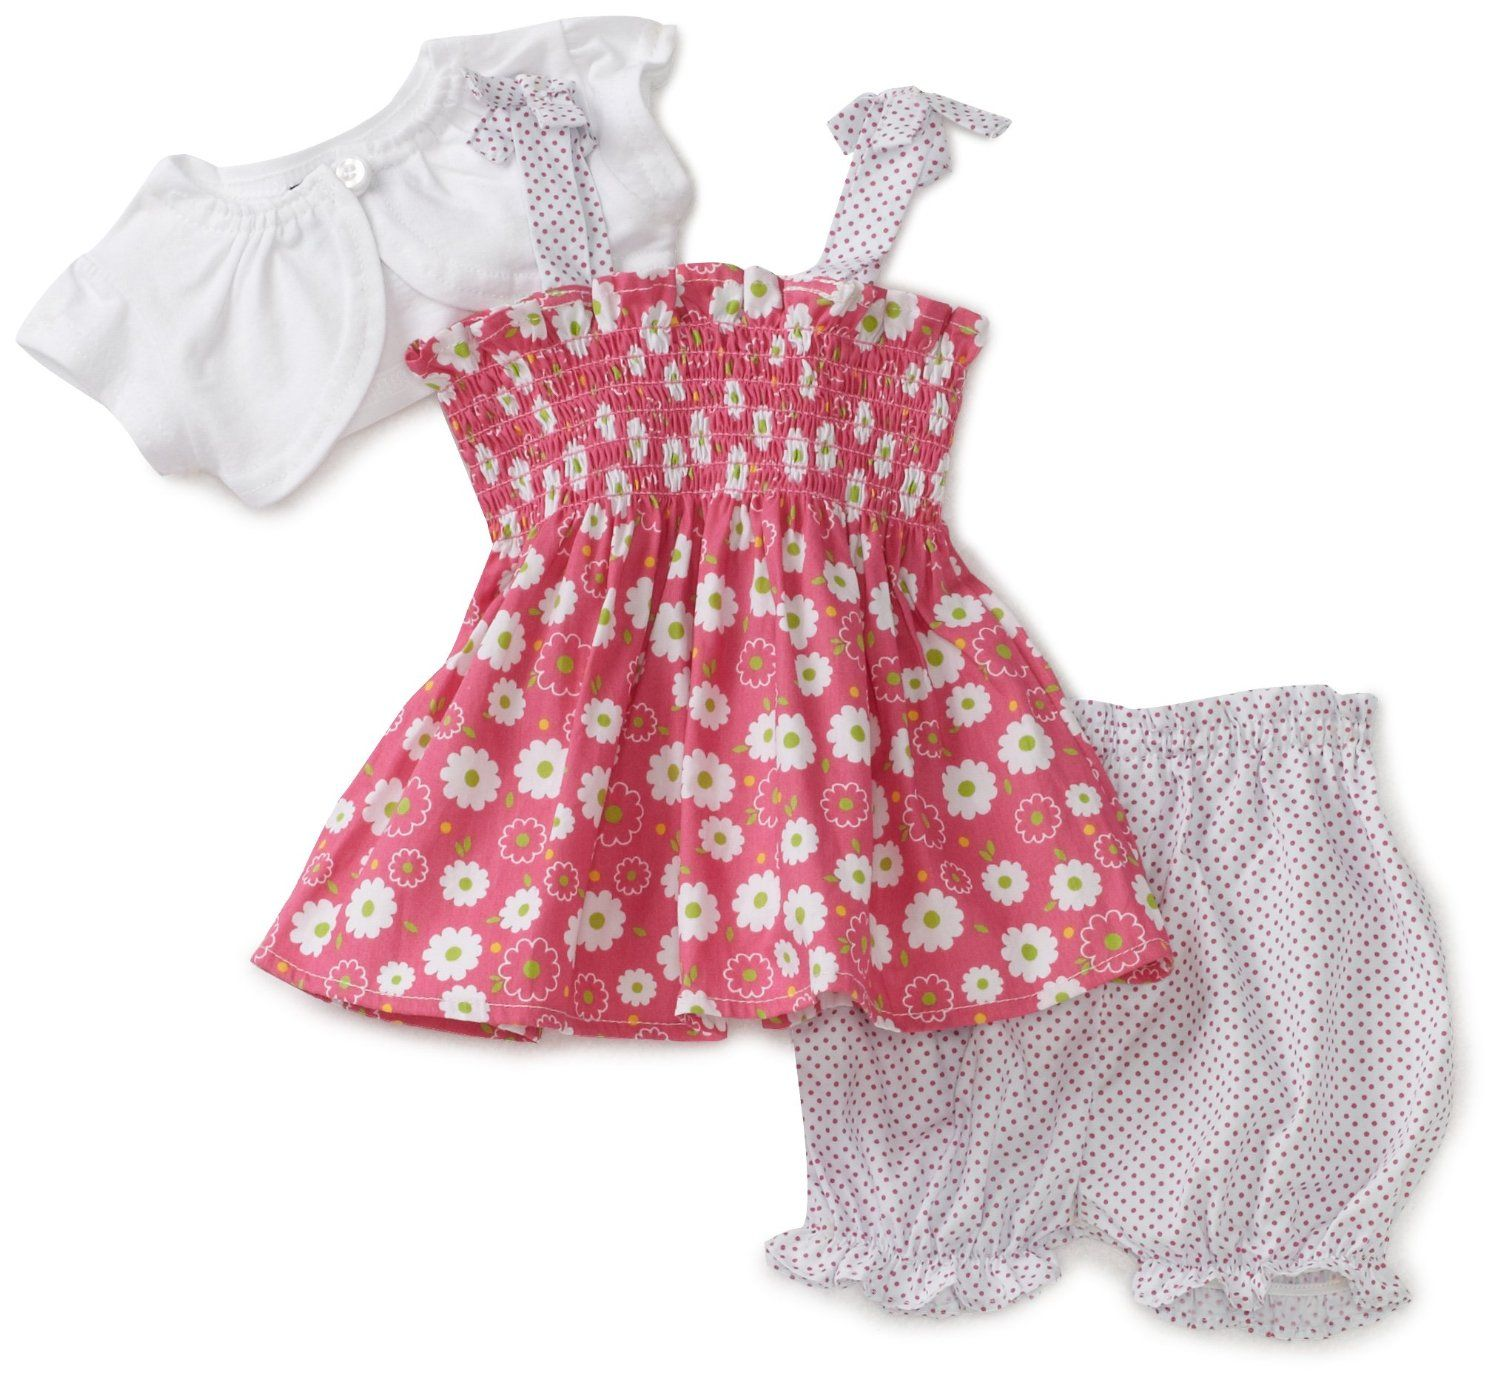 Newborn Baby Girl Clothes | So La Vita Baby-girls Newborn Flower ...